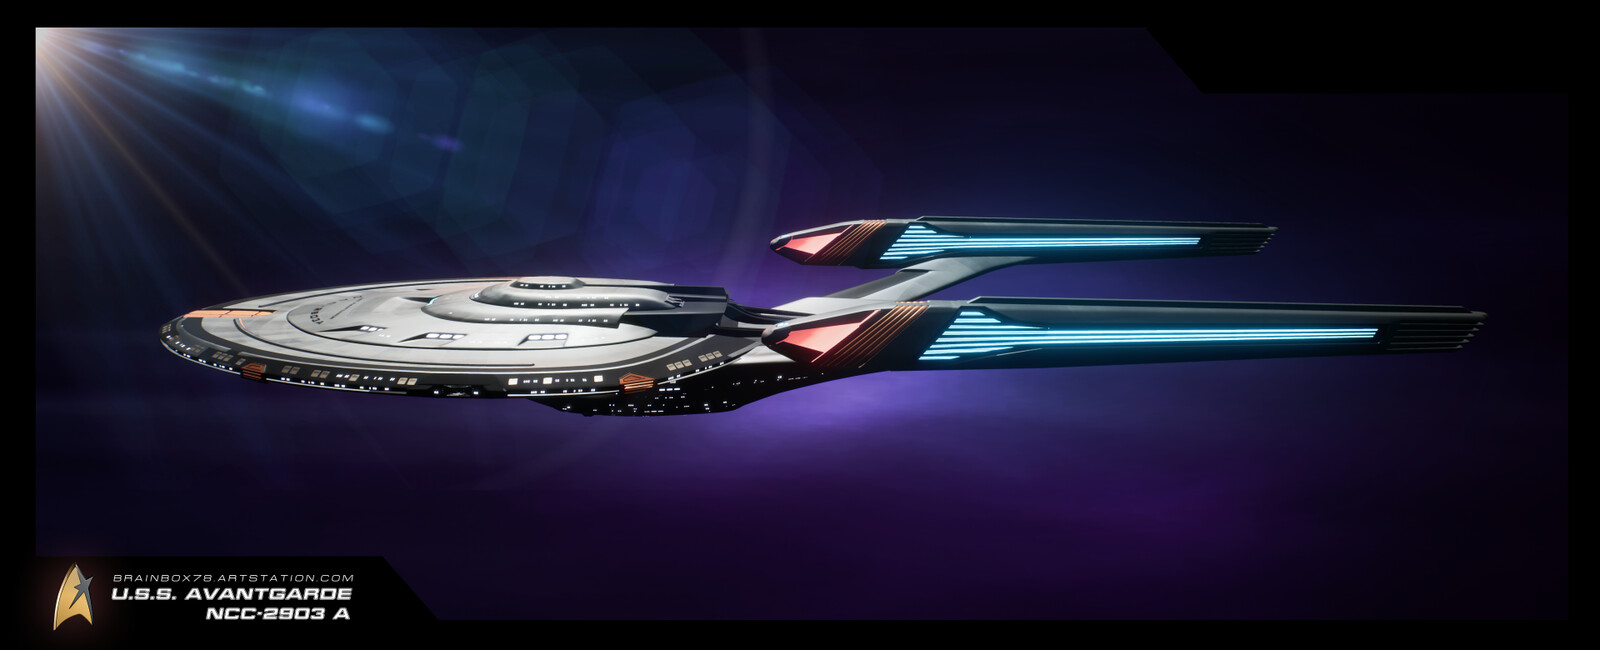 Wallpaper U.S.S. AVANTGARDE NCC-2903 A